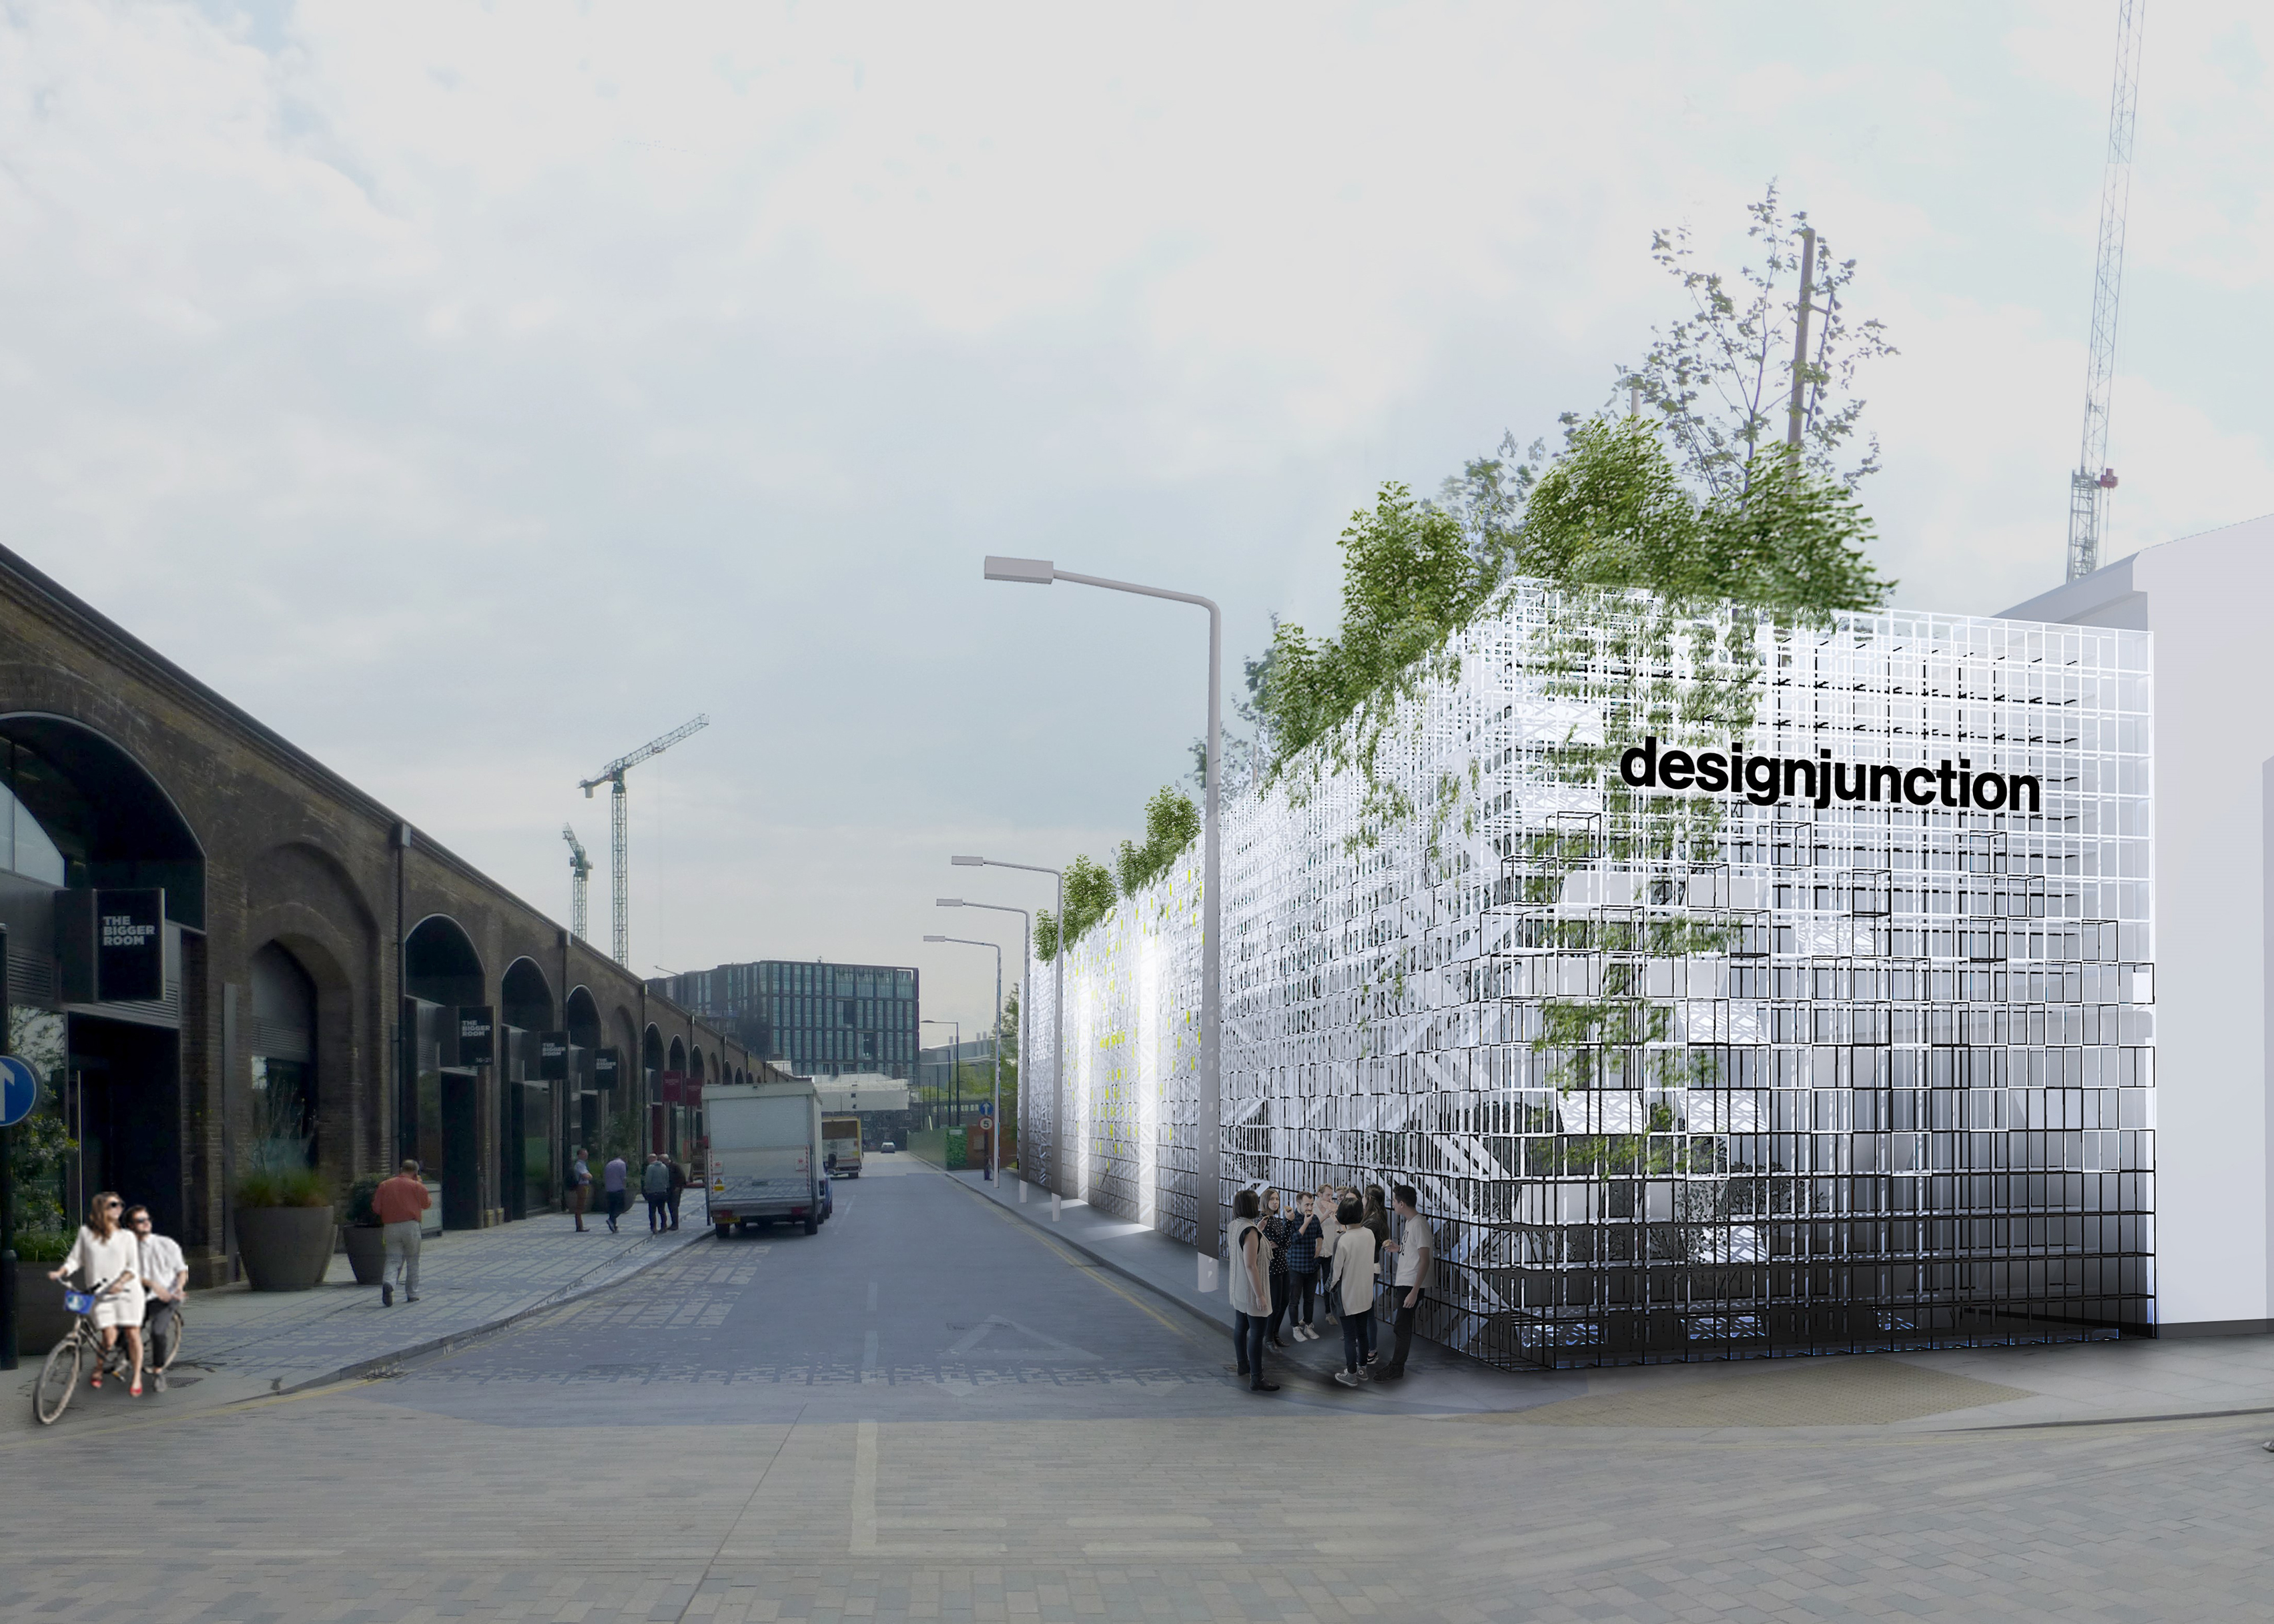 Satellite Architects to create facade installation for designjunction 2016